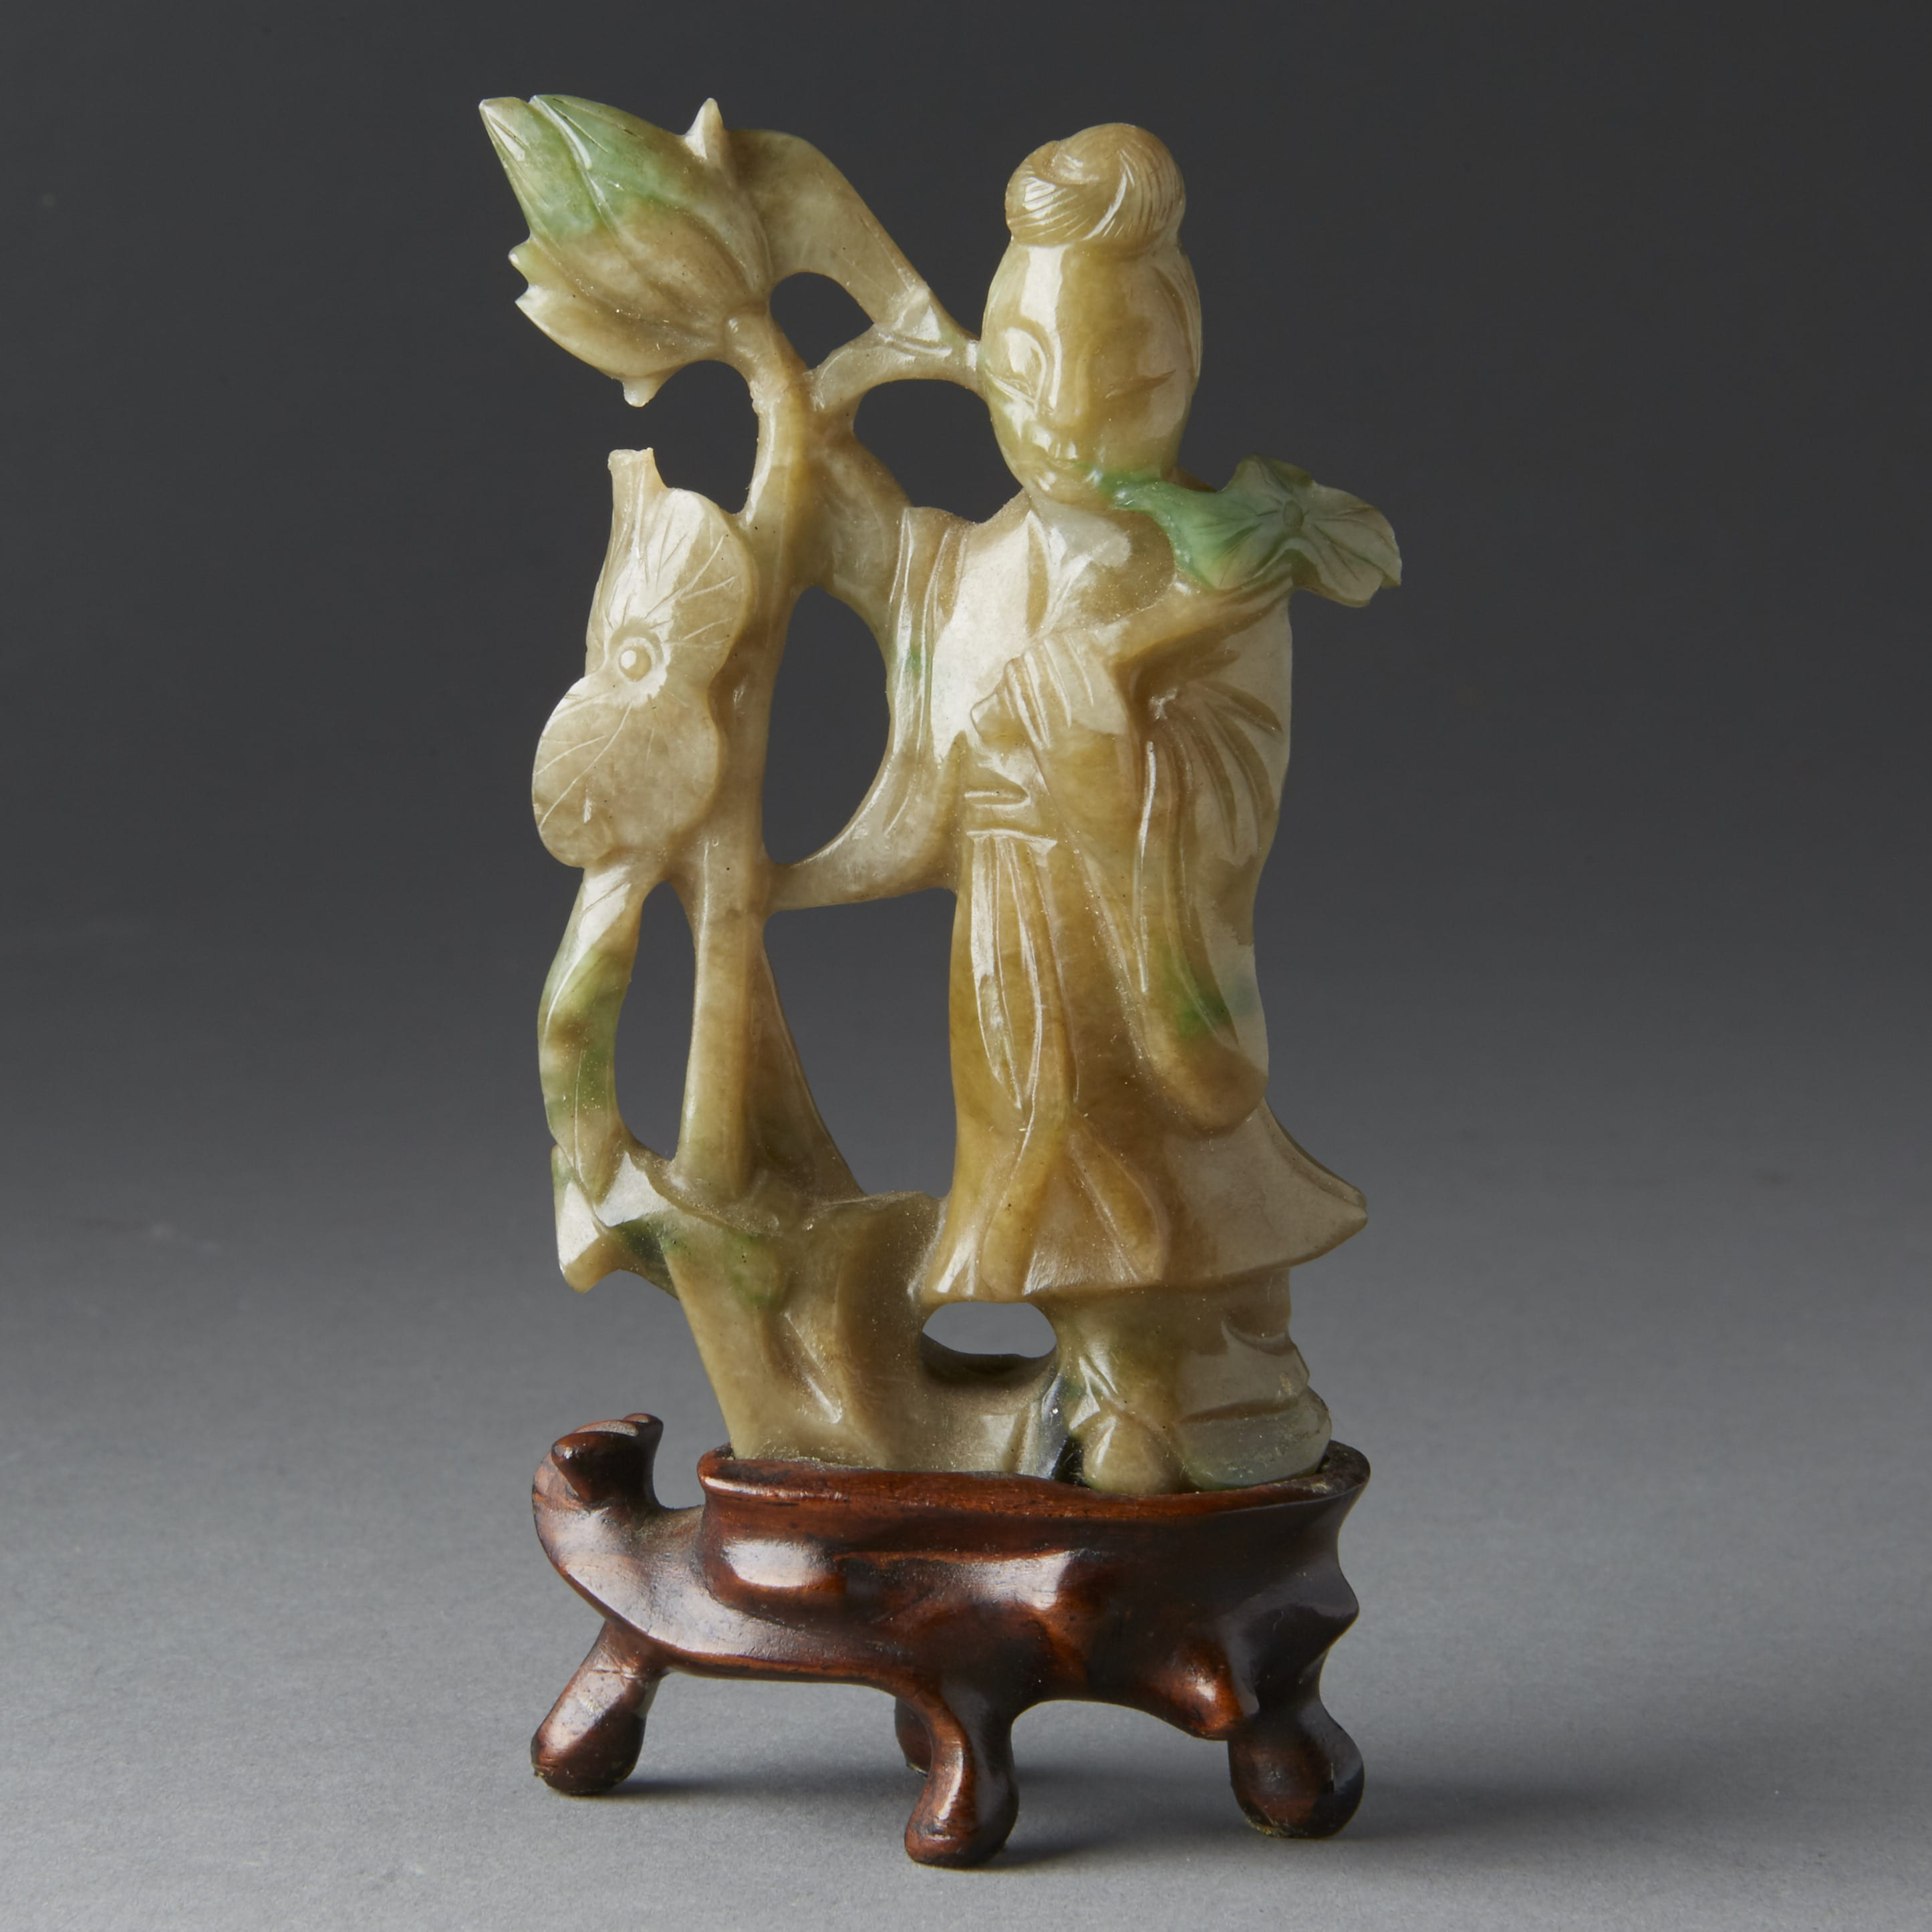 Lot 025: Chinese 19th century green jade carving of maiden on wooden stand